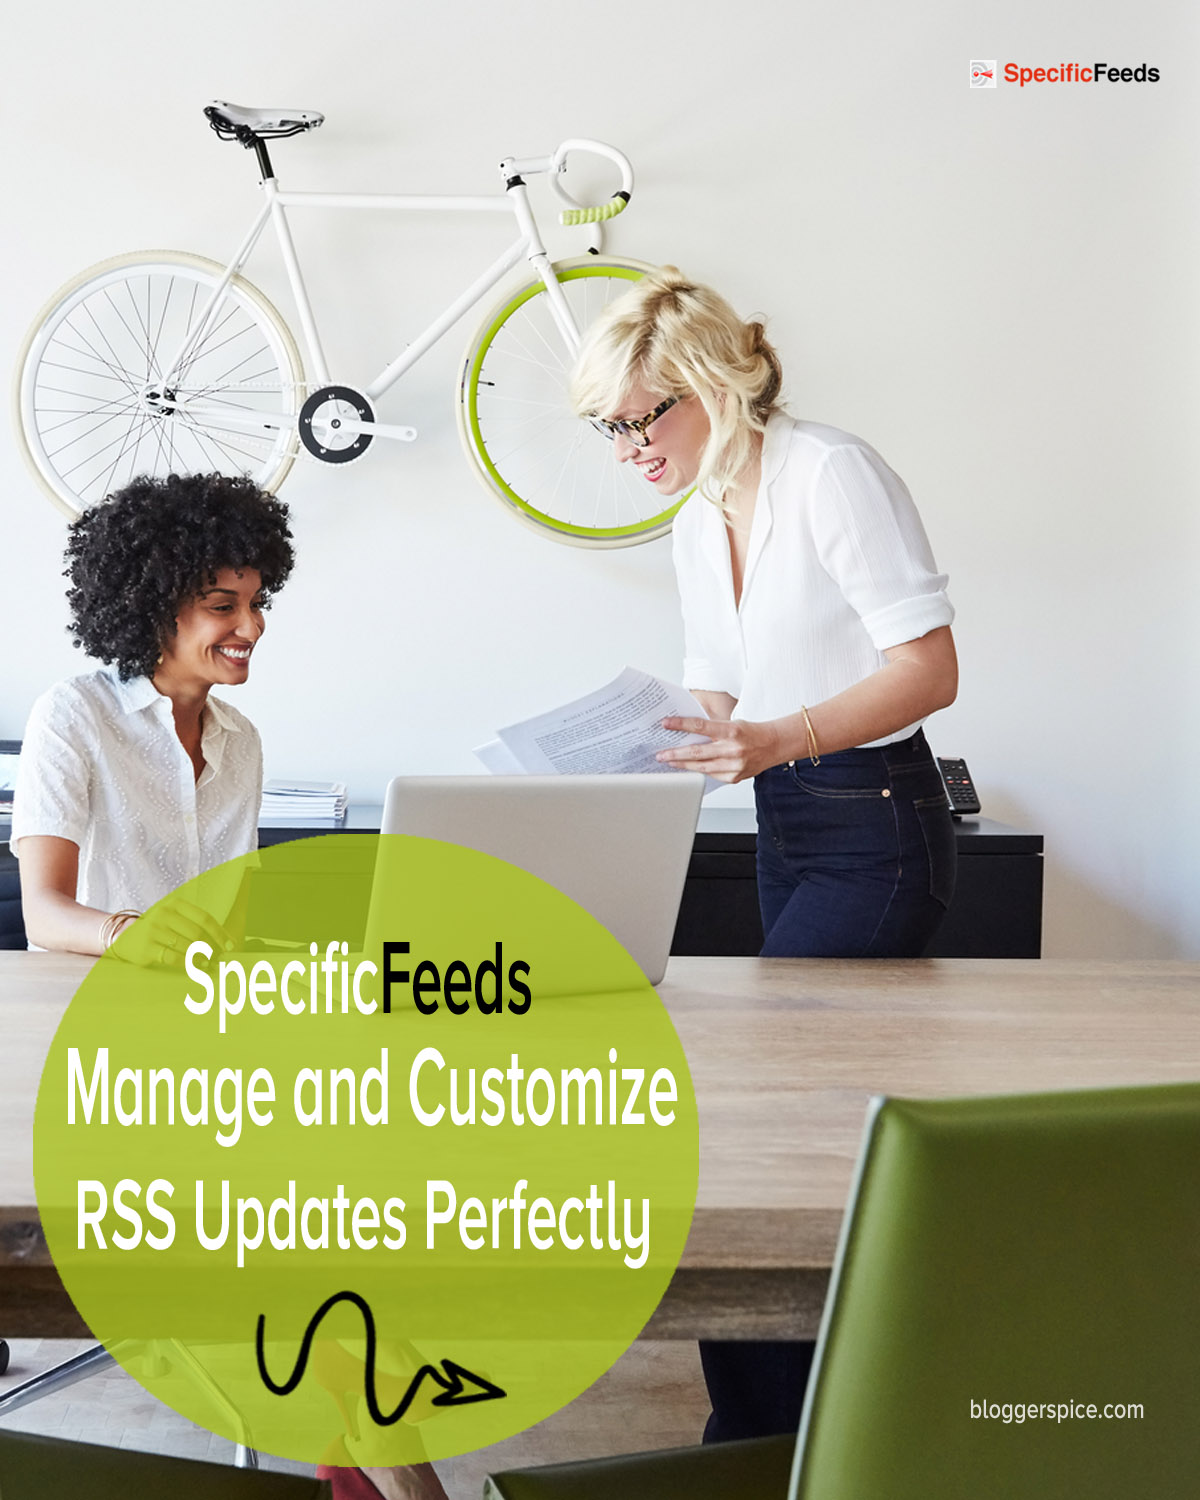 how to use SpecificFeeds to Manage and Customize your RSS Updates Perfectly